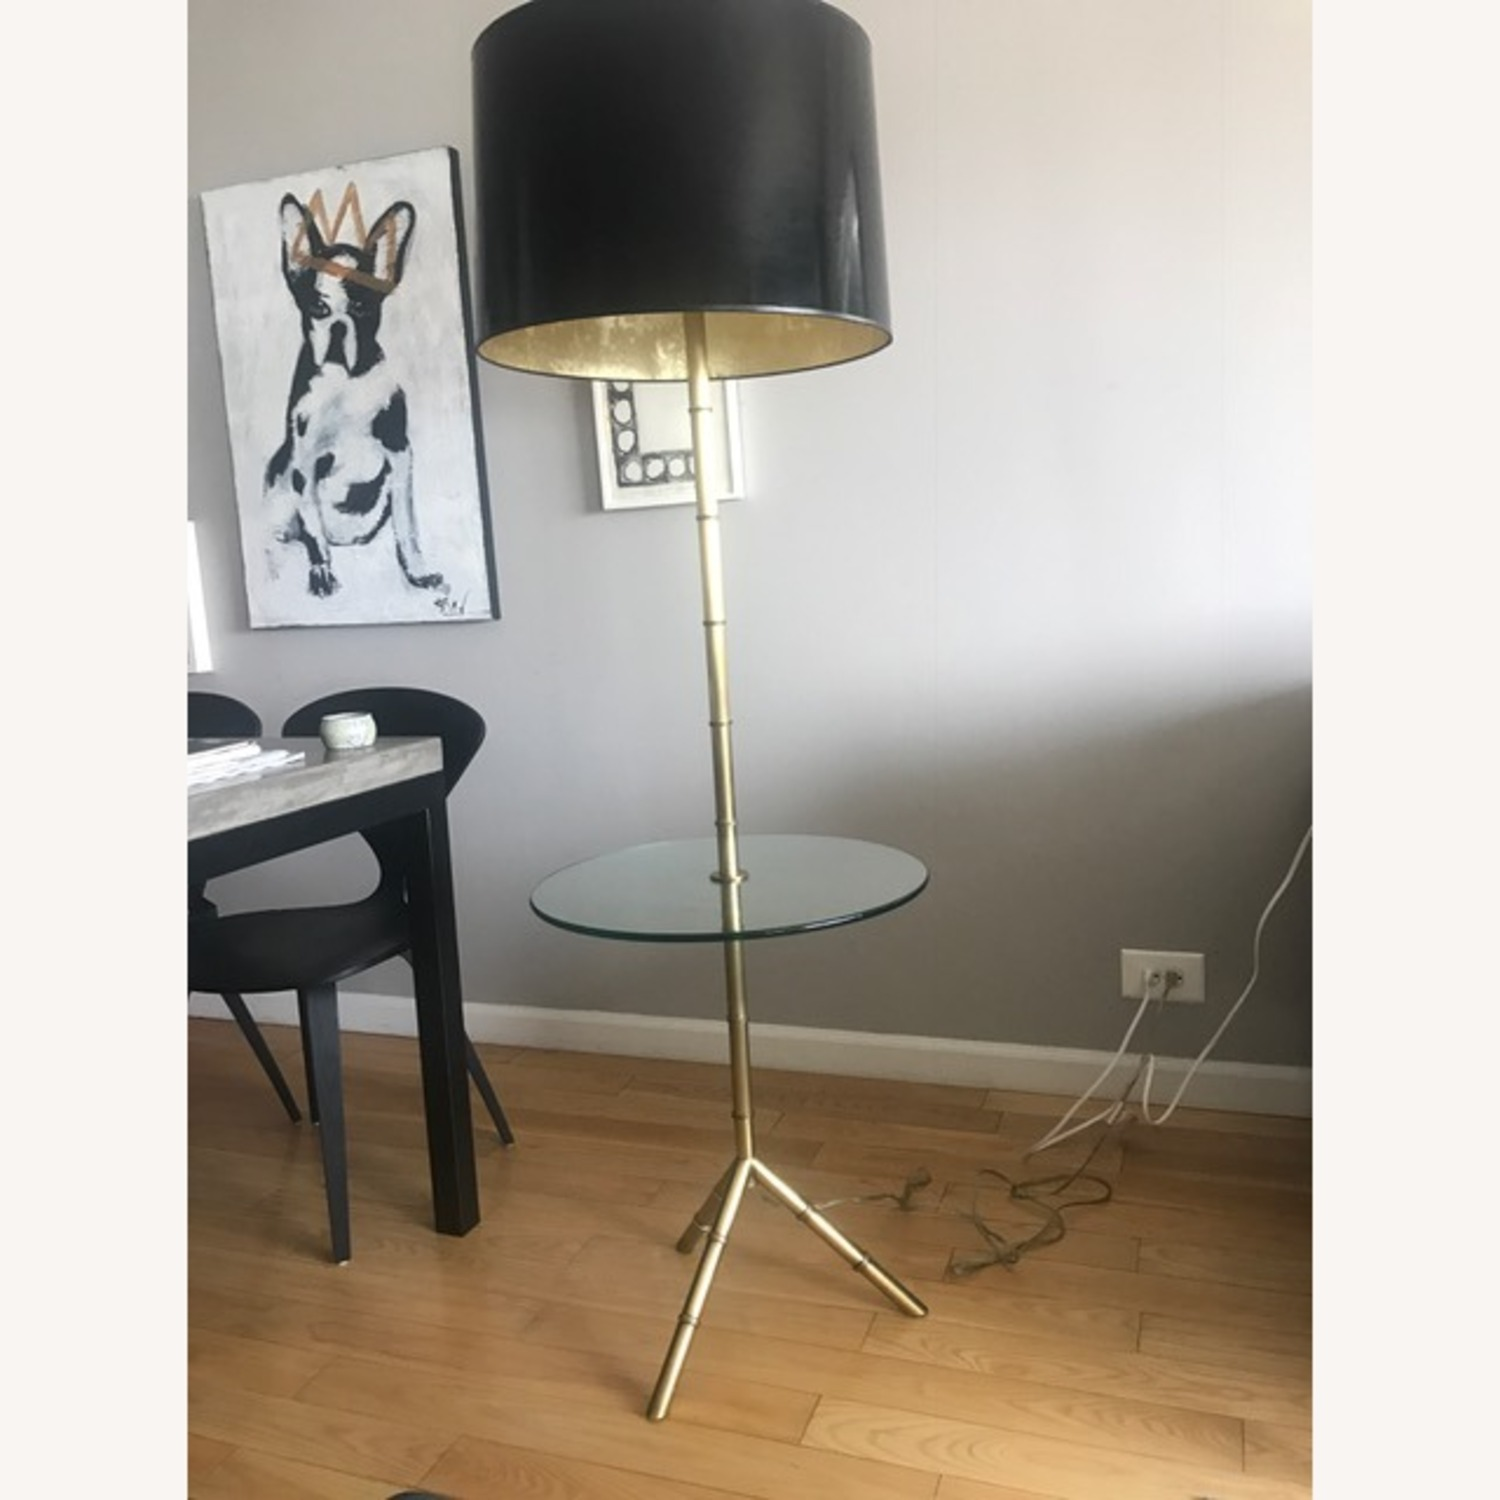 Jonathan Adler Meurice Floor Lamp with Table - image-2